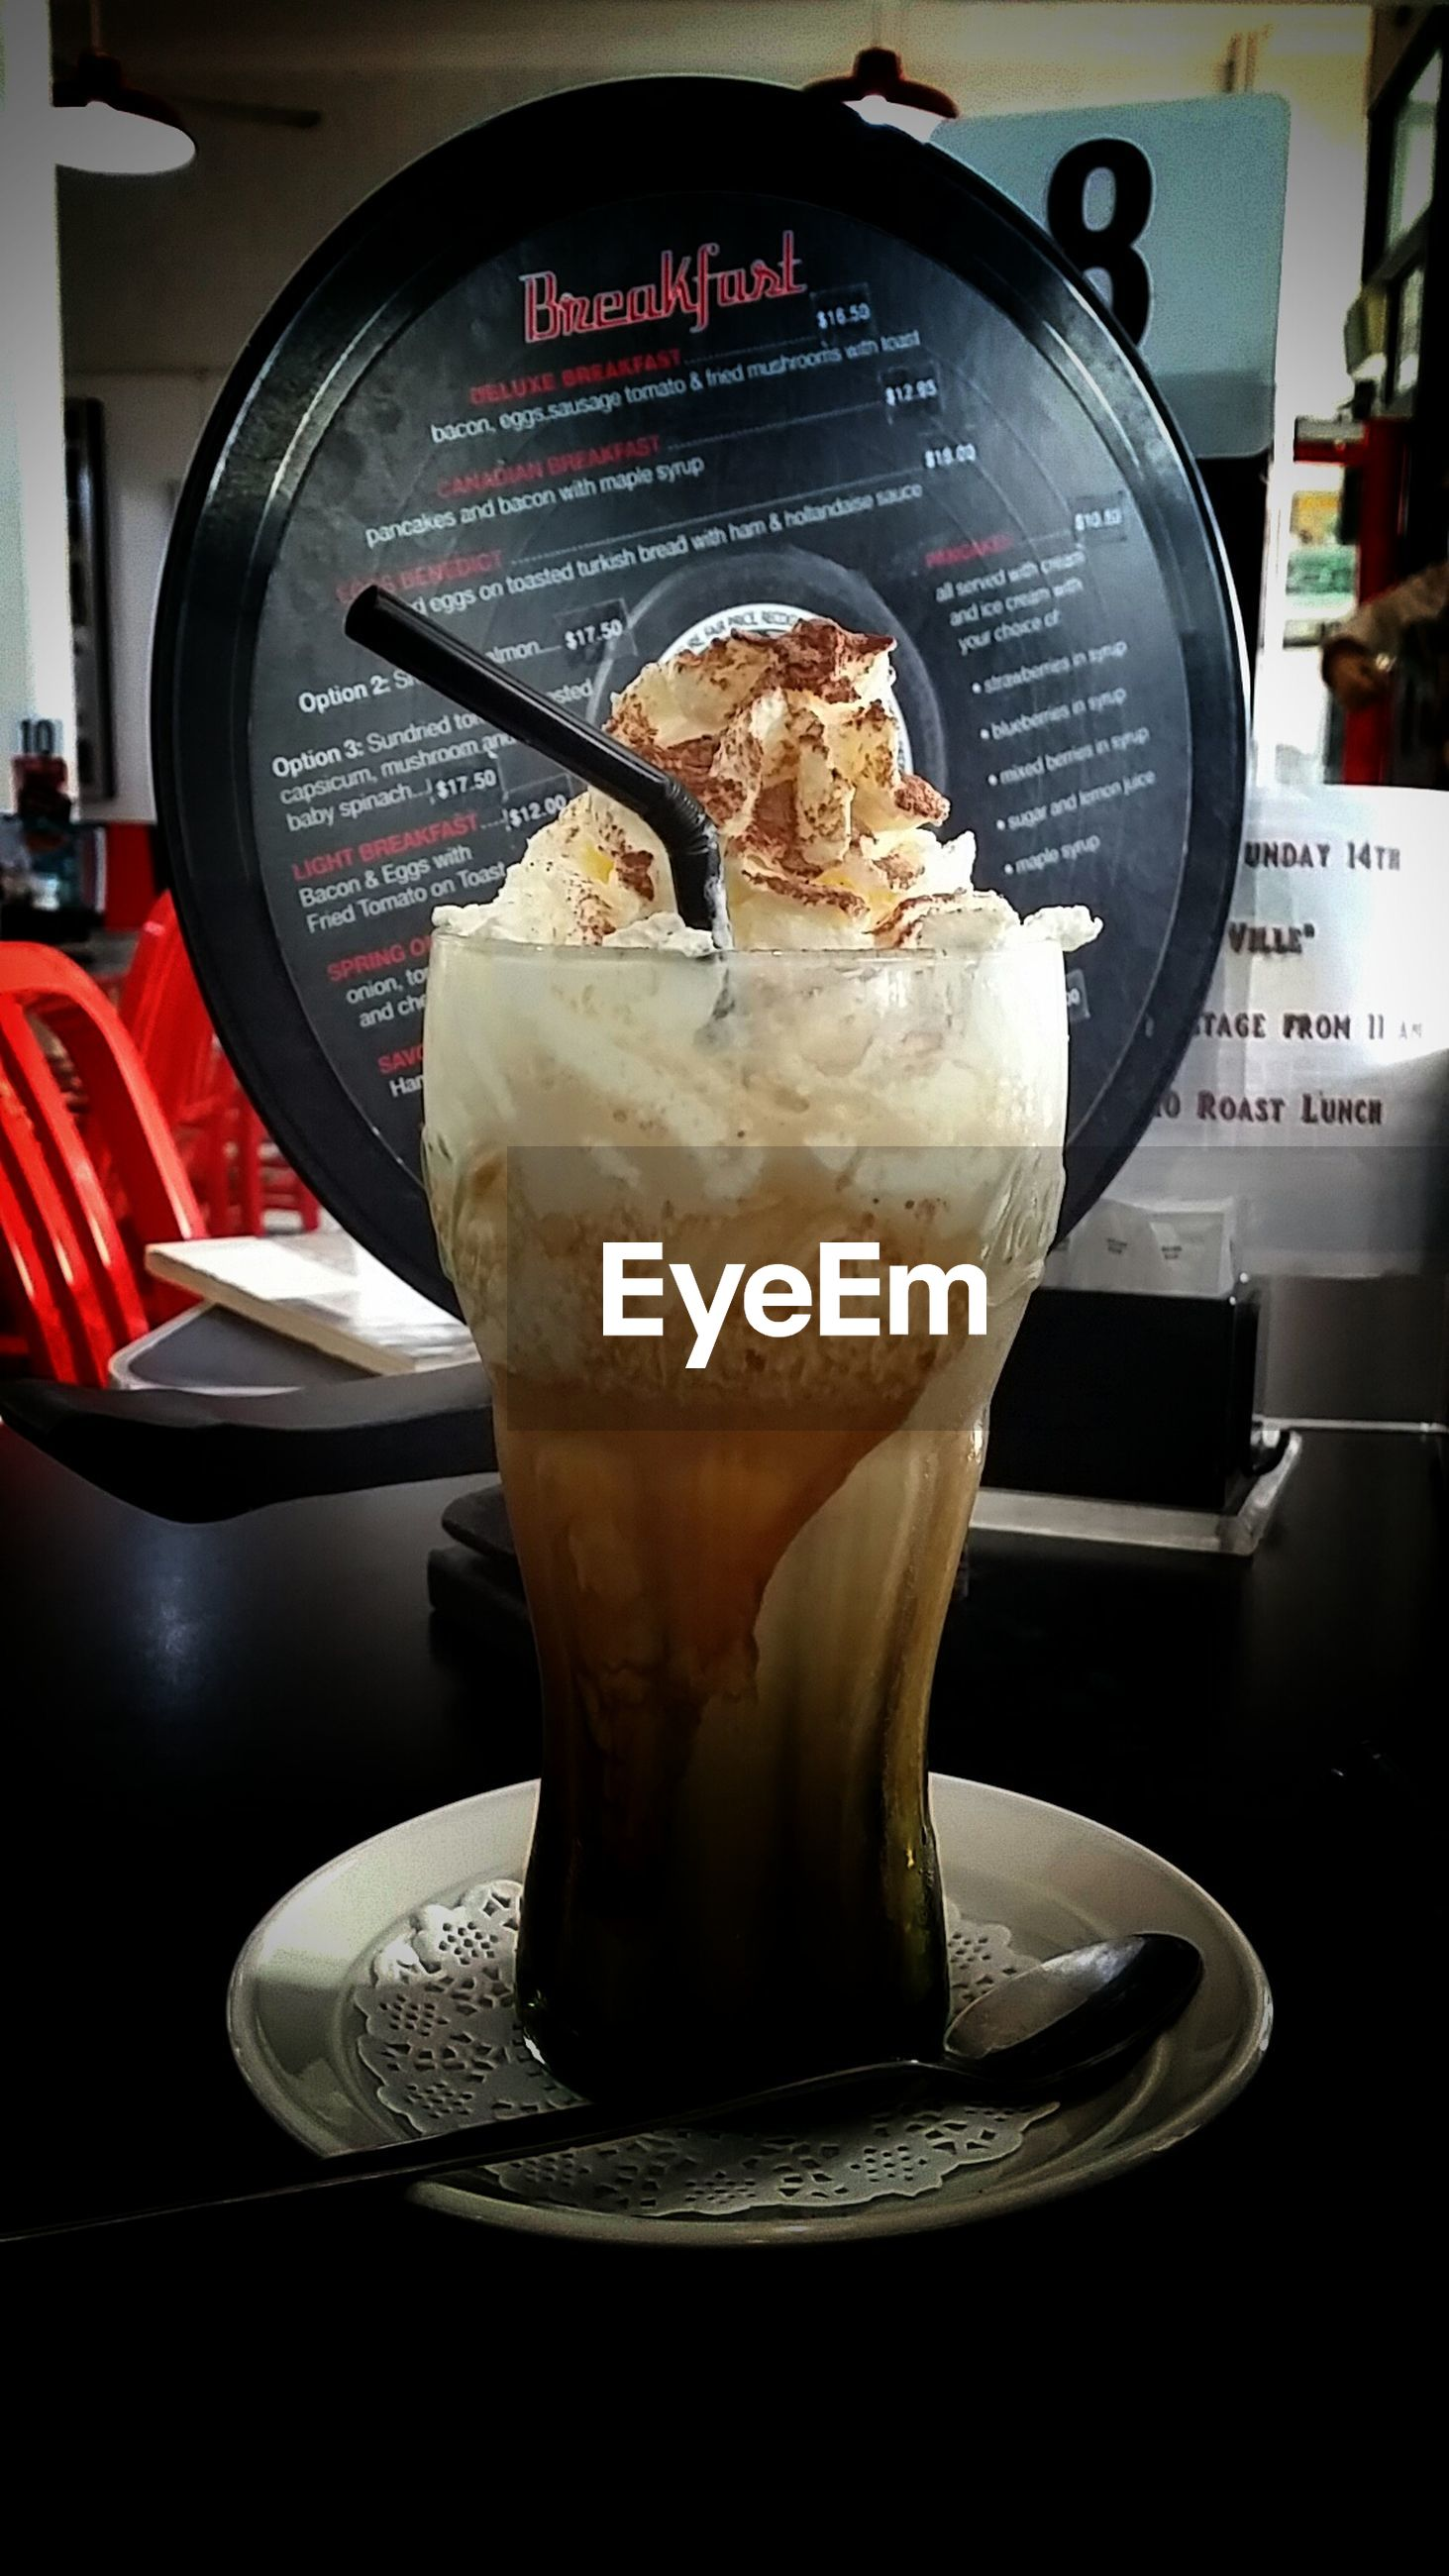 sweet food, ice cream, dessert, food and drink, frozen food, temptation, table, indulgence, food, indoors, refreshment, serving size, freshness, unhealthy eating, drink, cafe, no people, milkshake, close-up, ready-to-eat, frothy drink, day, ice cream sundae, ice cream parlor